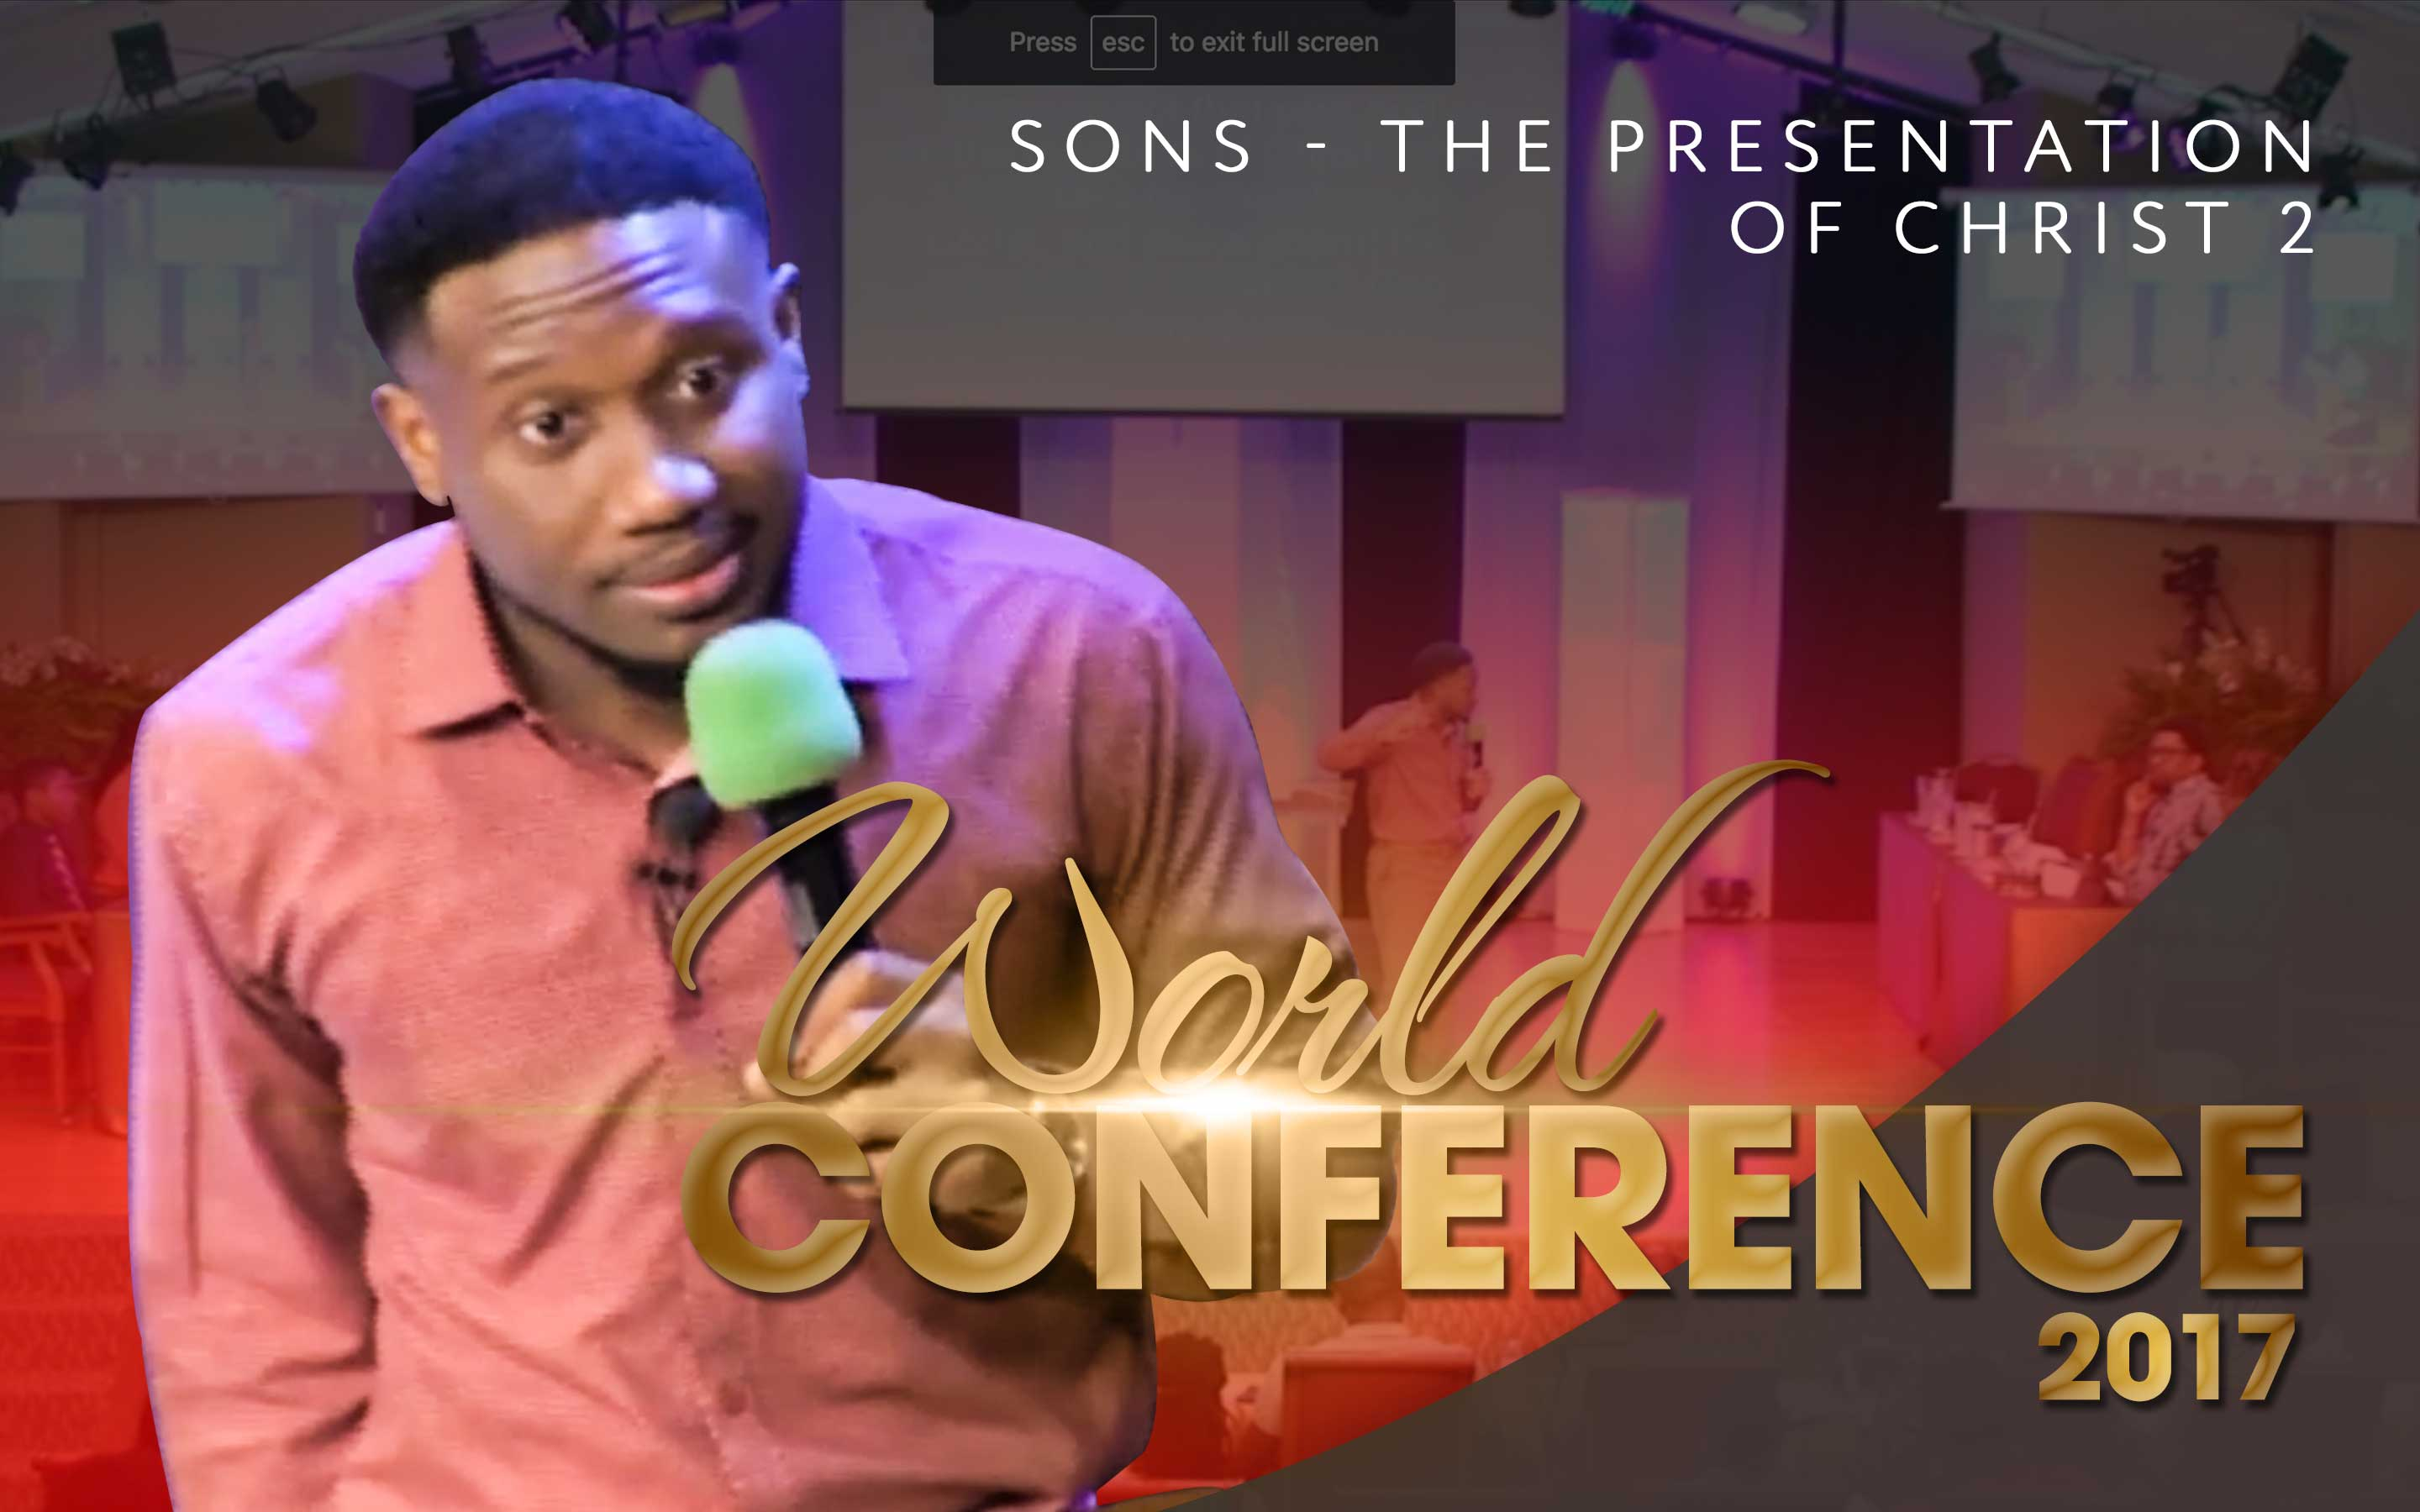 Sons – The Presentation of Christ 2